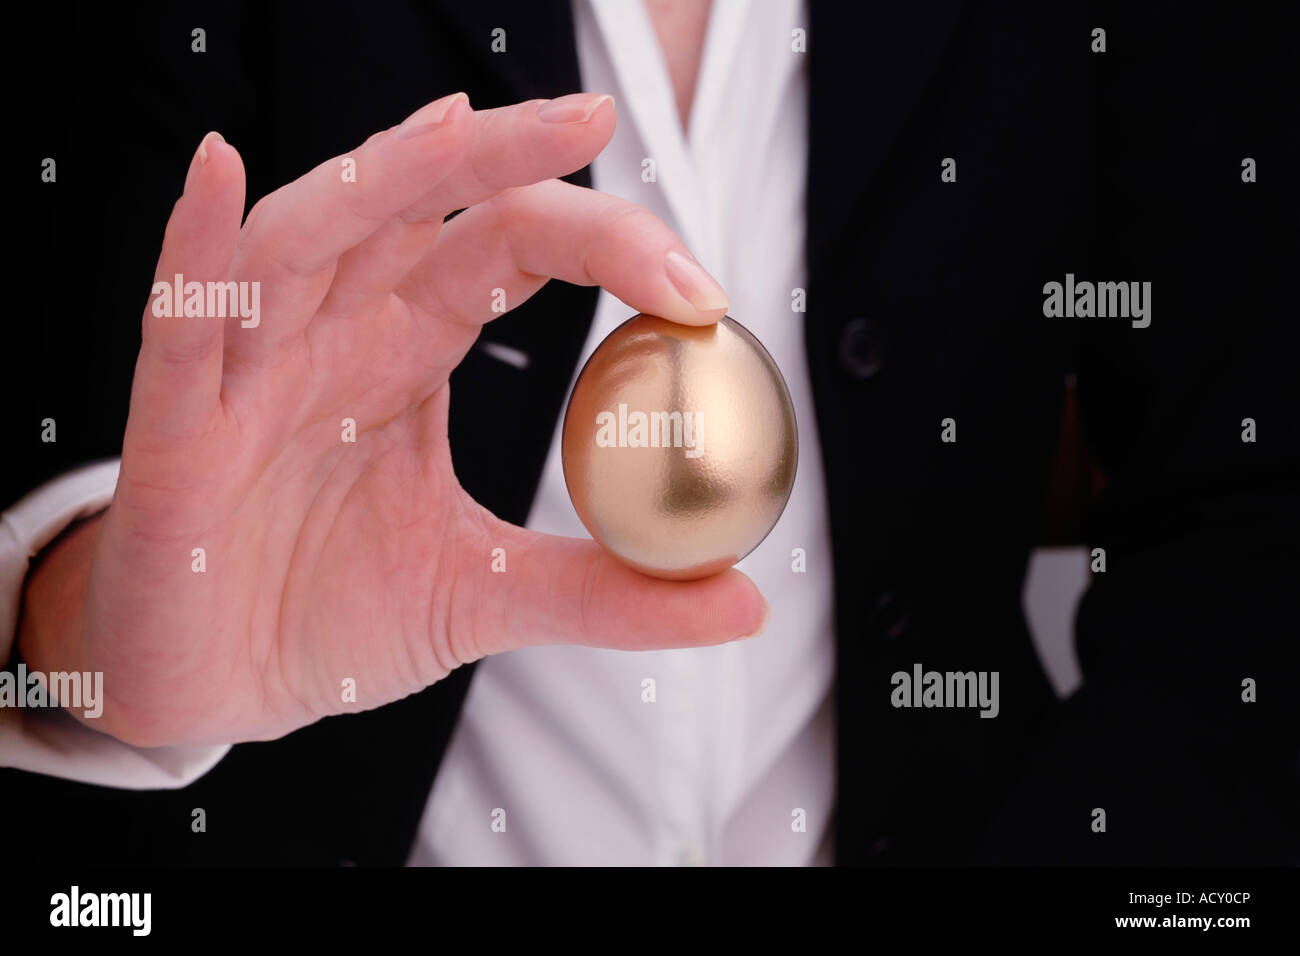 Woman holding golden egg - Stock Image